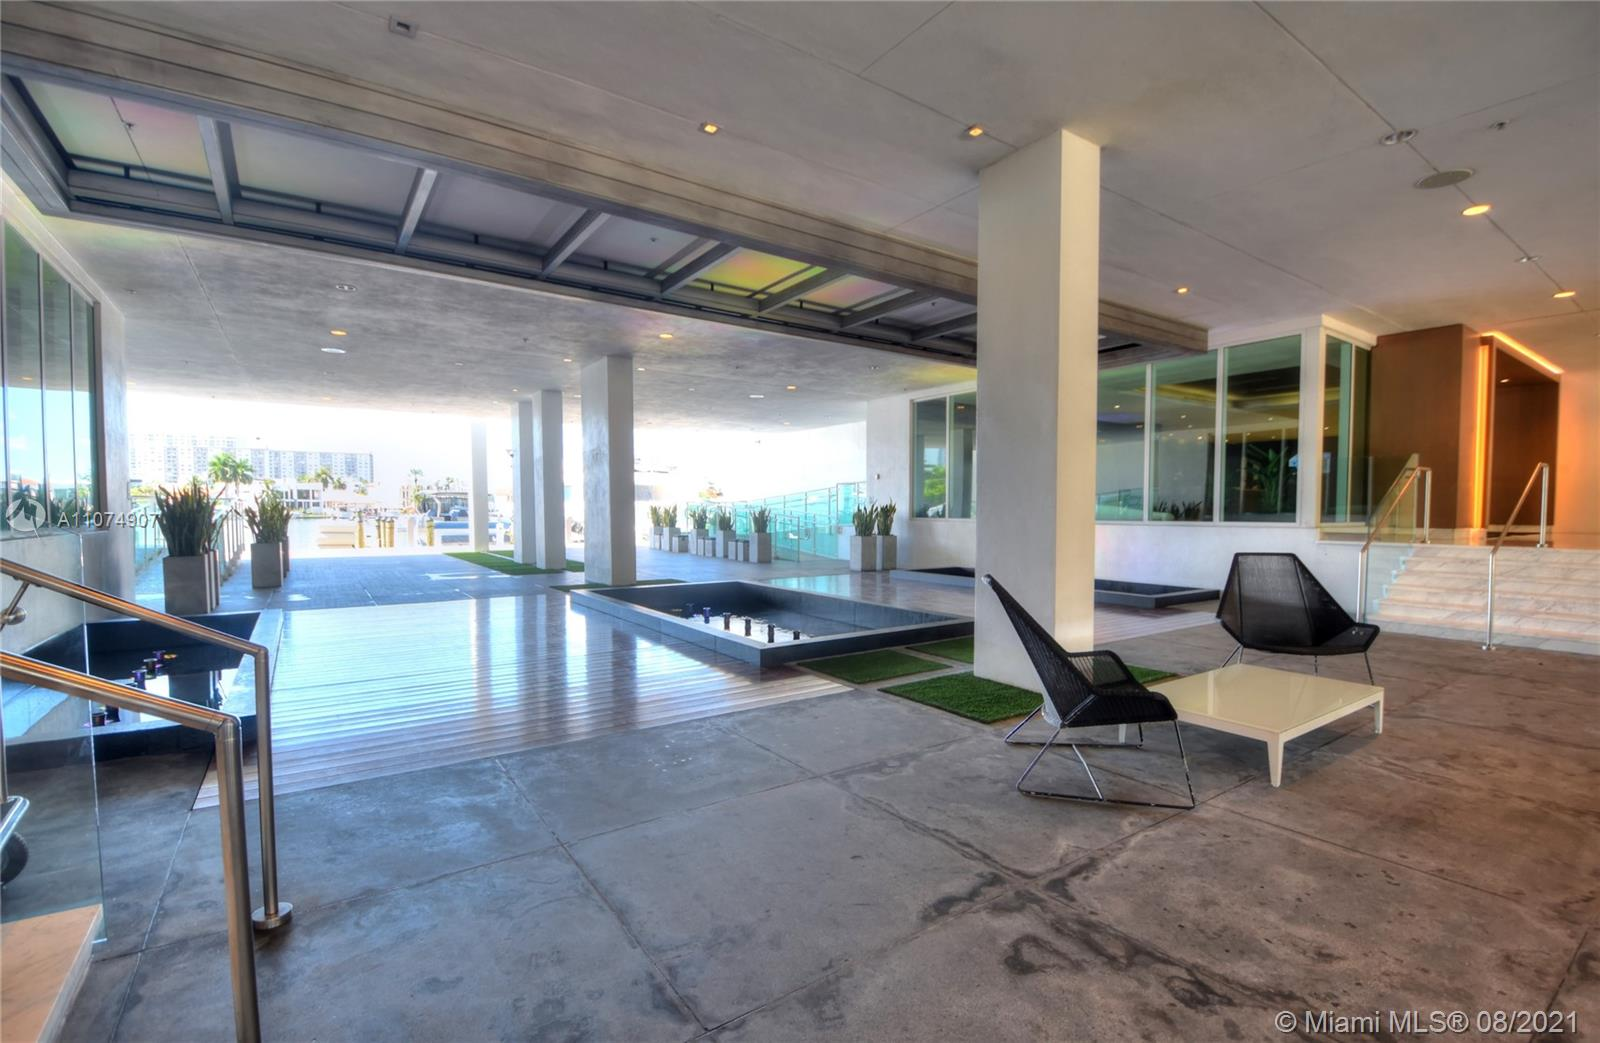 Great 3 bed for rent in the heart of Sunny Isles. Completely furnished. Direct intracoastal views from  every room. Easy to show. Contact listing agent for showings.